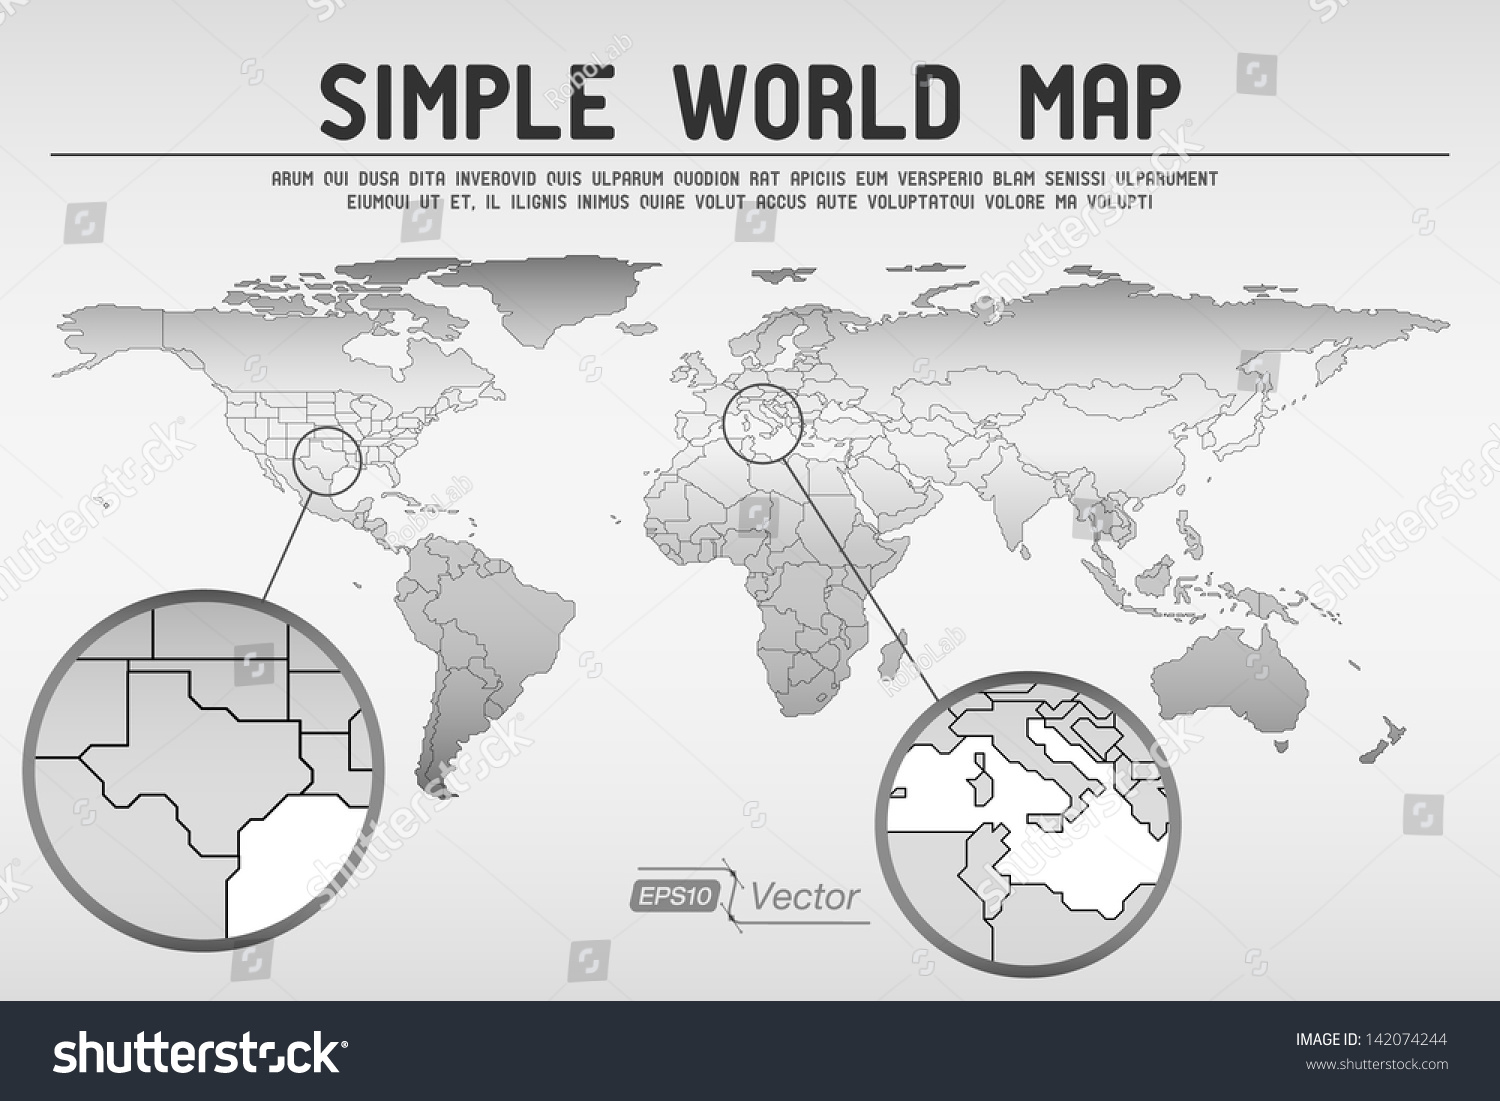 Abstract simple world map eps 10 vector stock vector 142074244 abstract simple world map eps10 vector design gumiabroncs Image collections